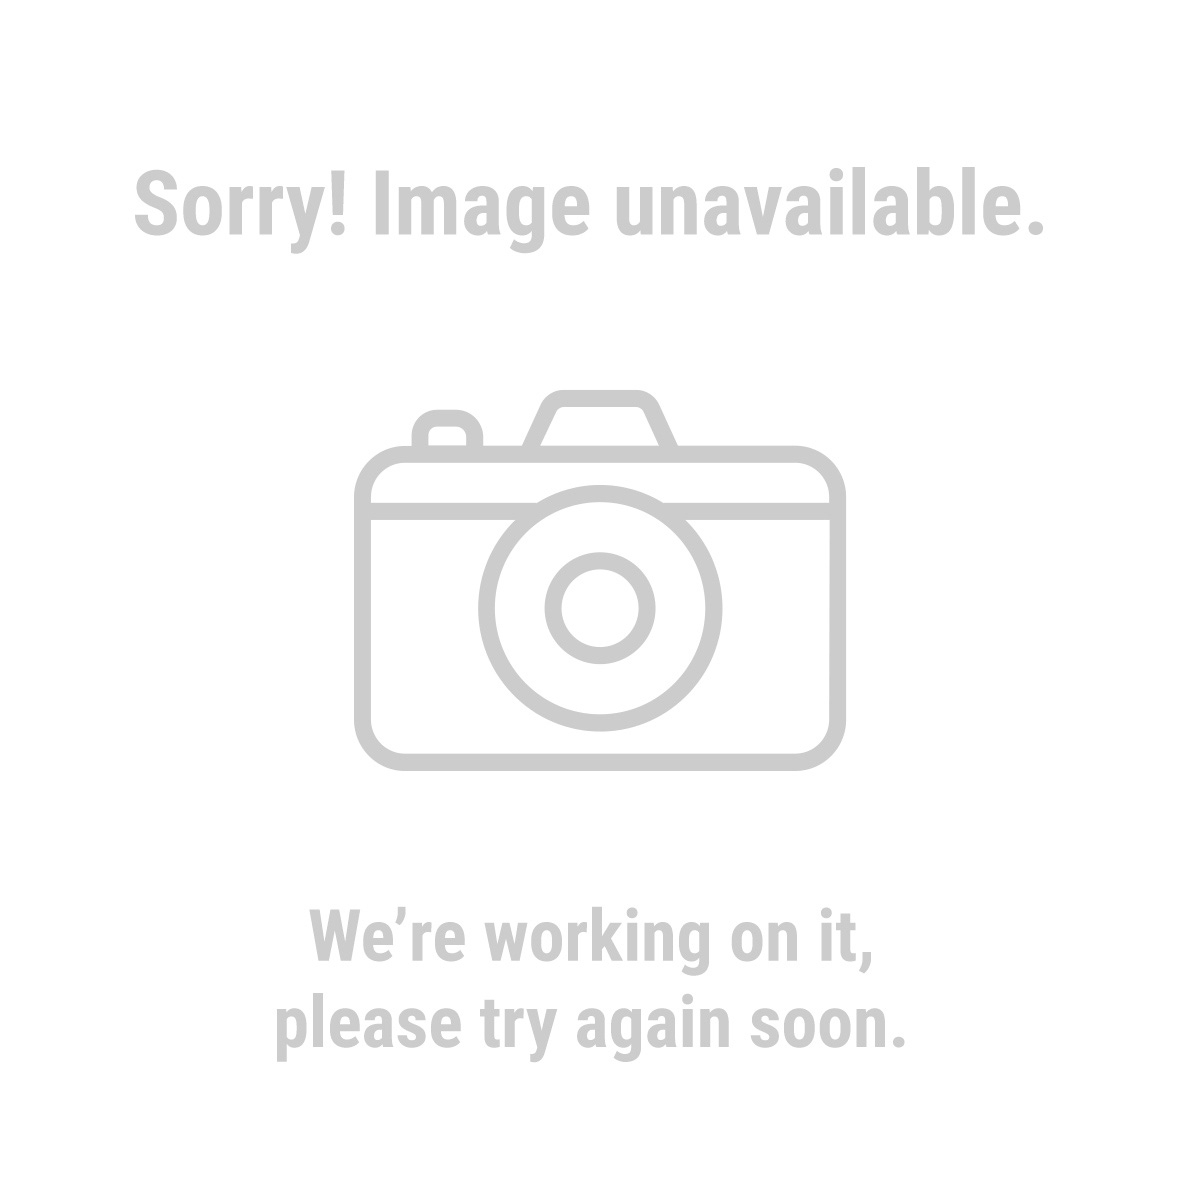 Cen-Tech 789 20 Piece Parallel Set